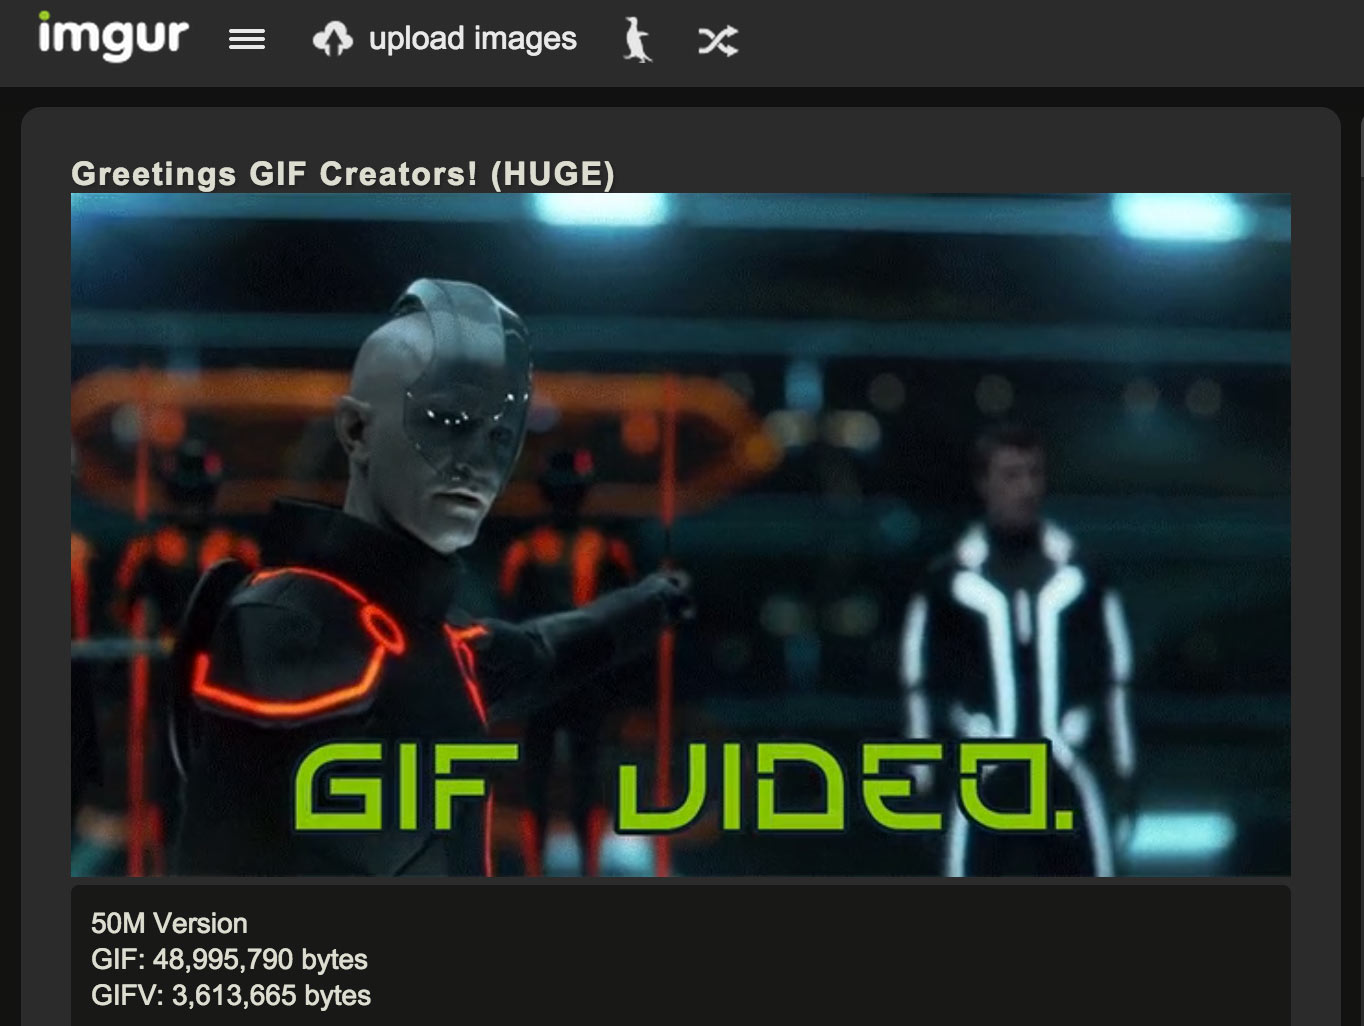 Imgur's GIFV format, which repackages bulky animated GIFs into a video file that behaves the same way, compresses to much smaller file sizes.